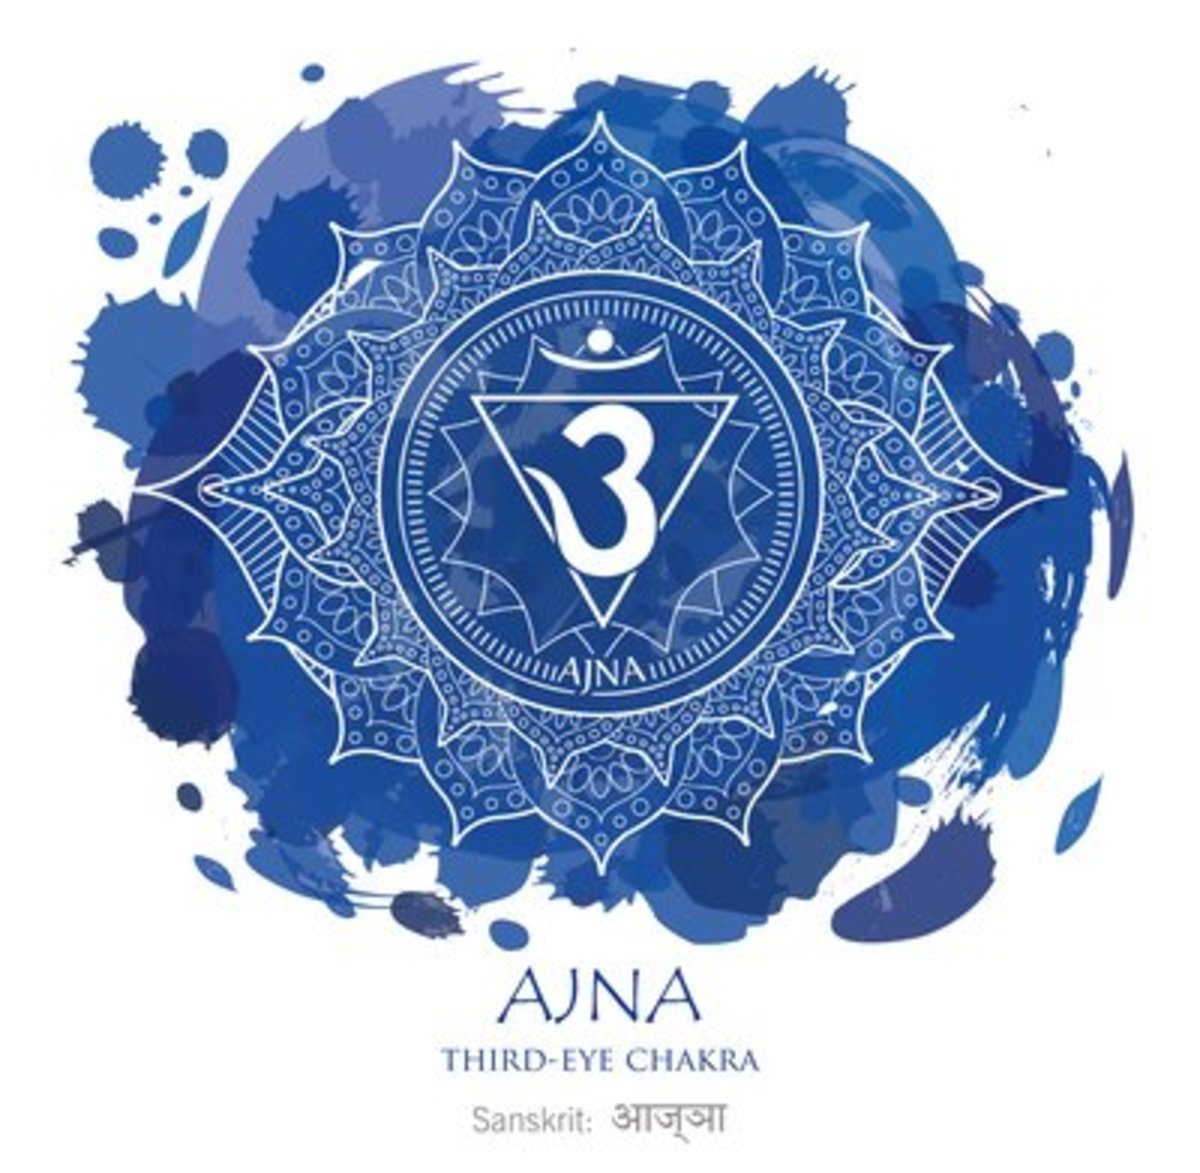 Facts About The Third Eye Chakra